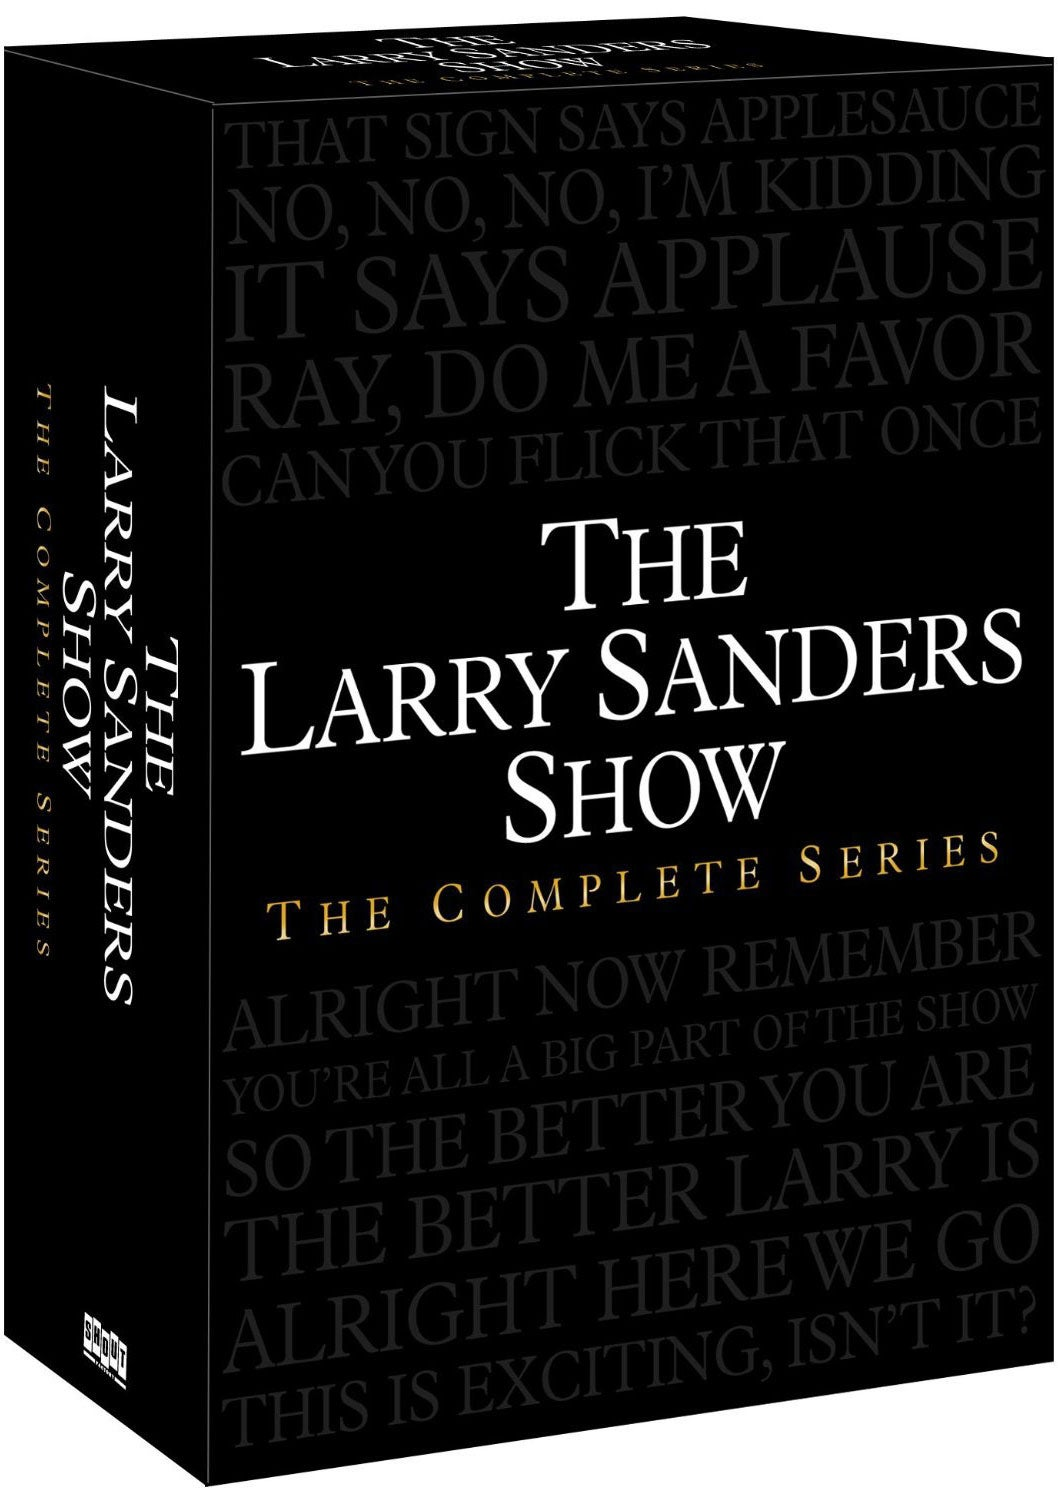 The Larry Sanders Show: The Complete Series (DVD)